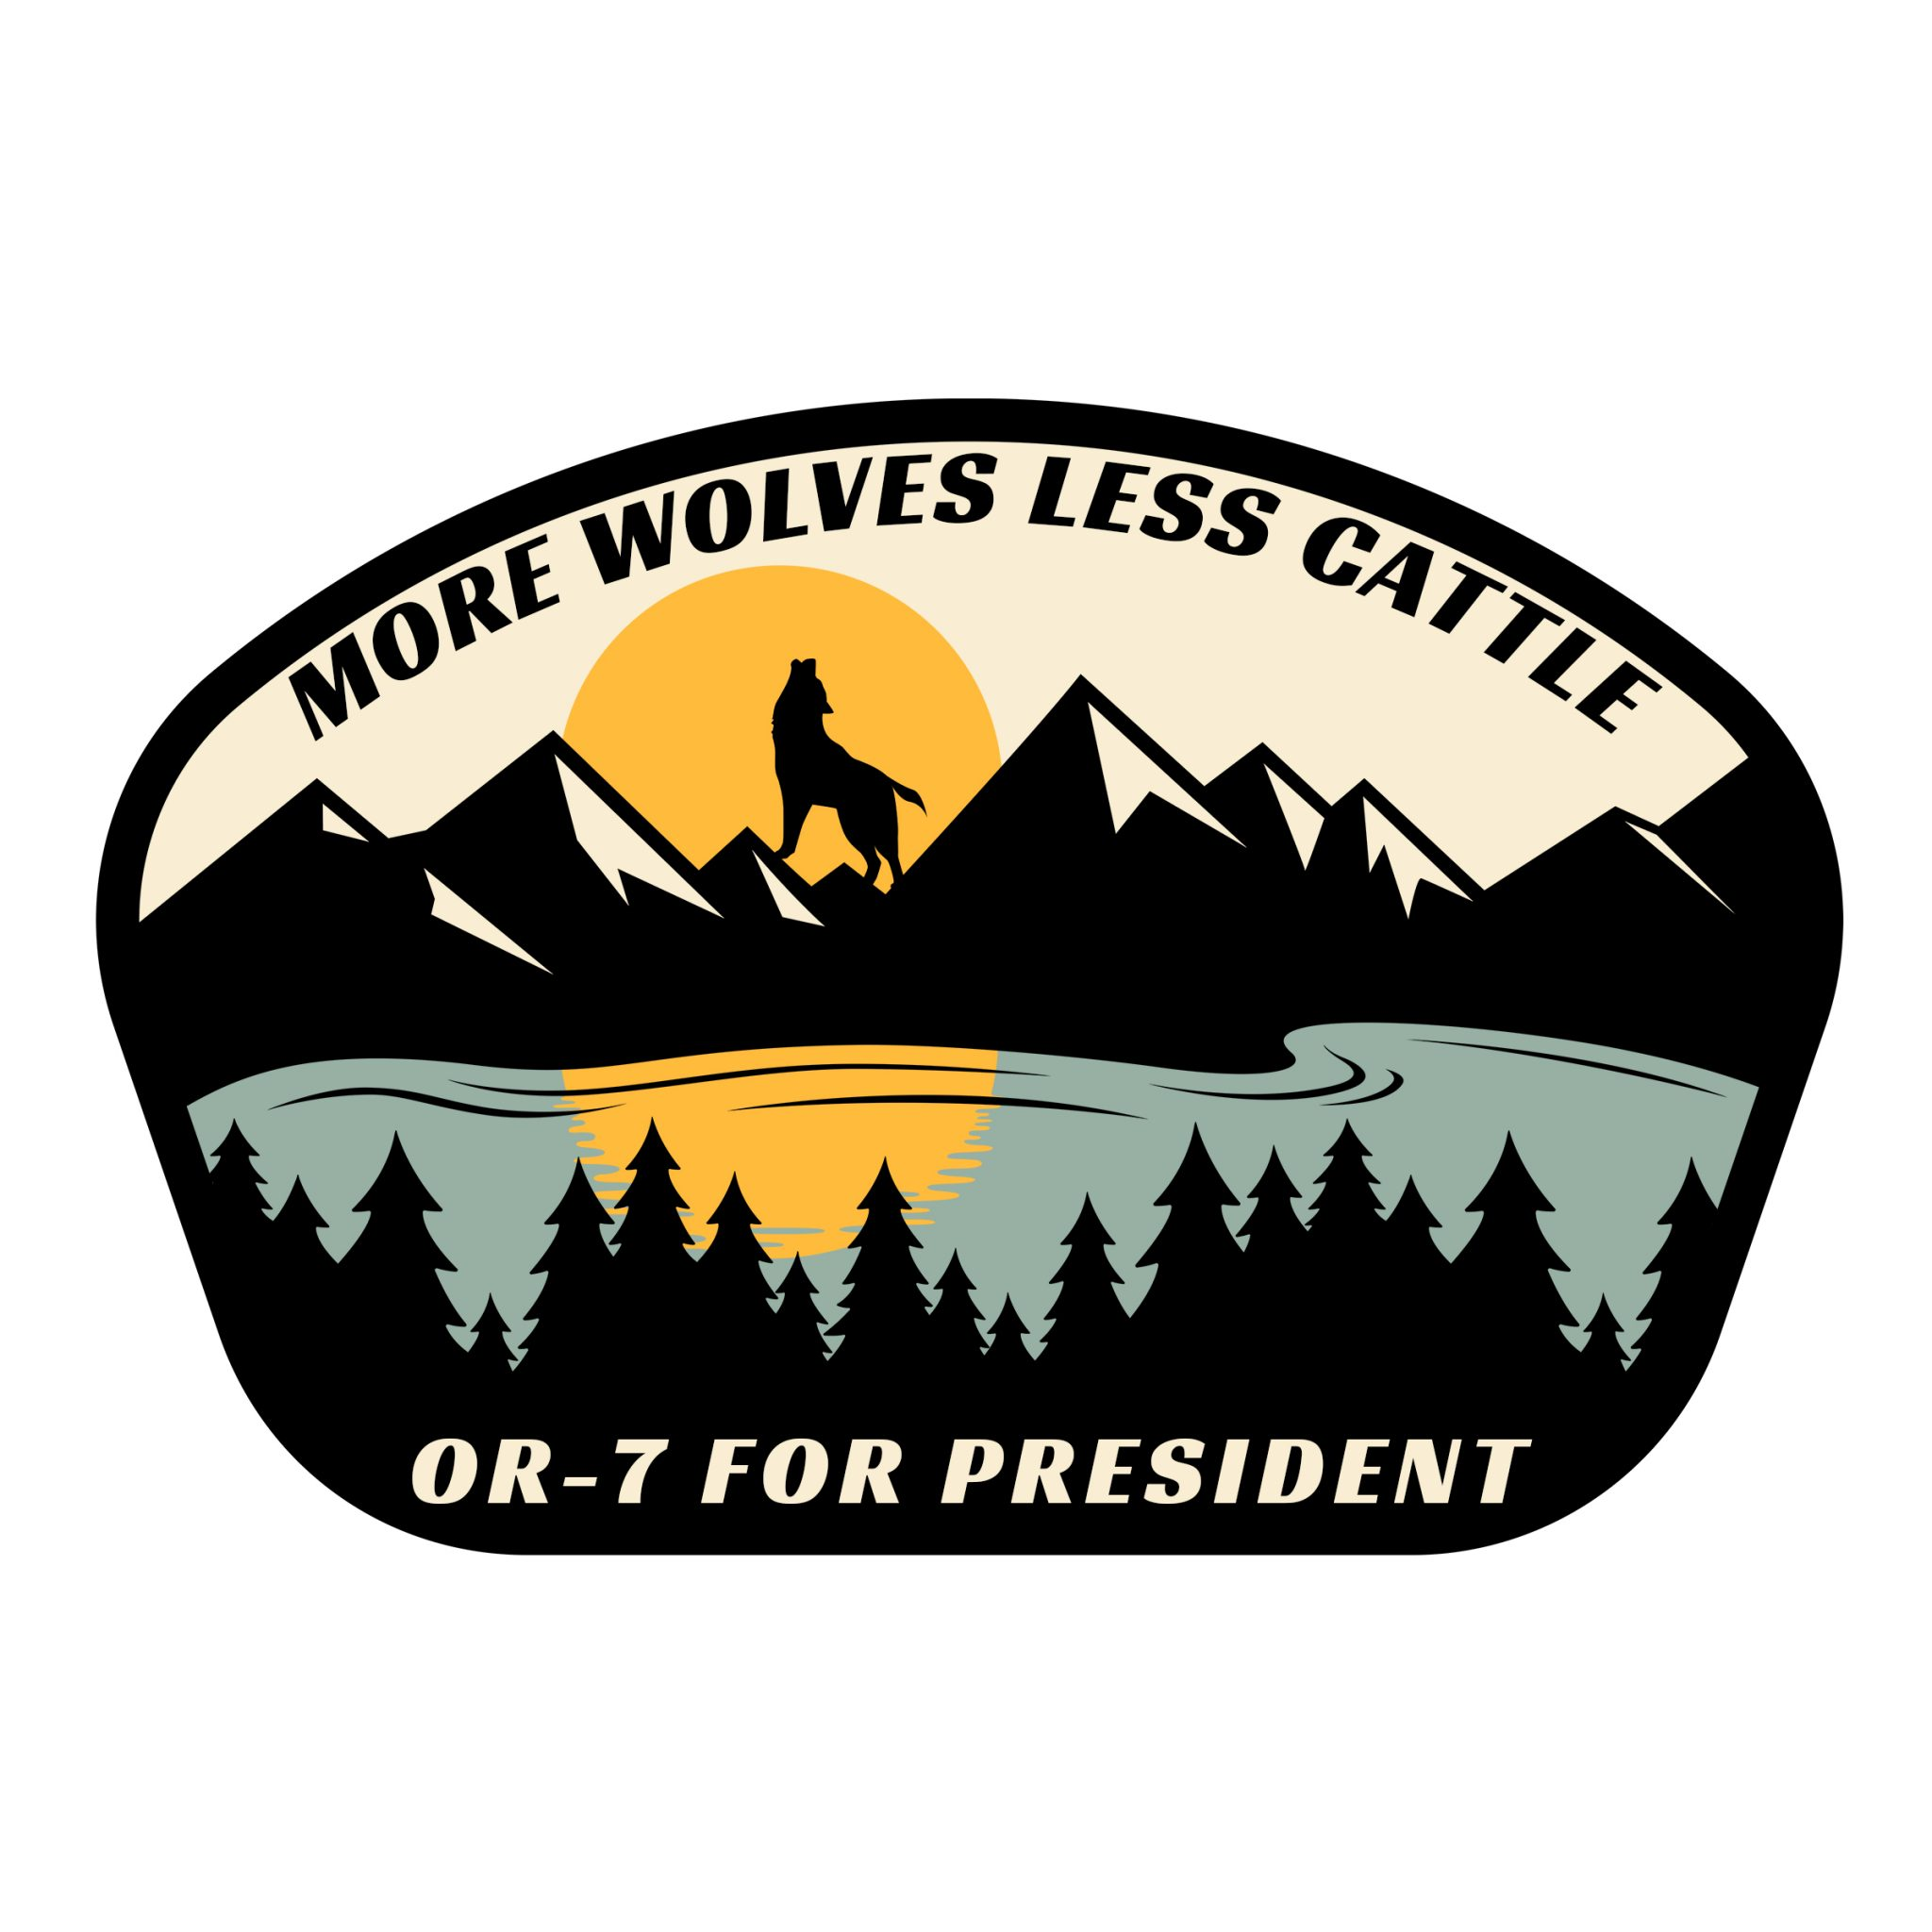 More Wolves Less Cattle